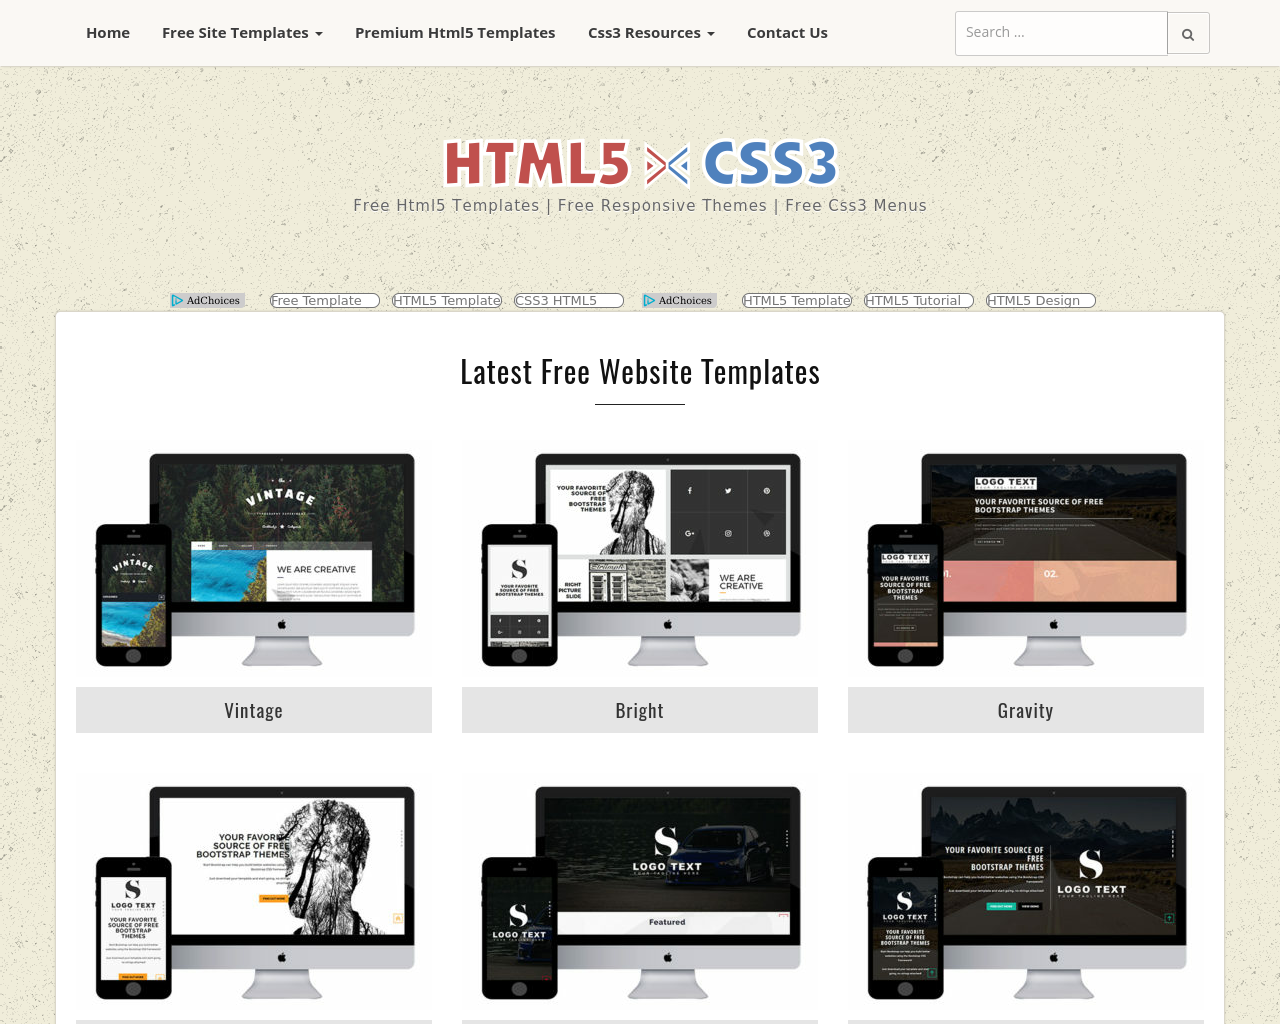 Html5xcss3-Advertising-Reviews-Pricing